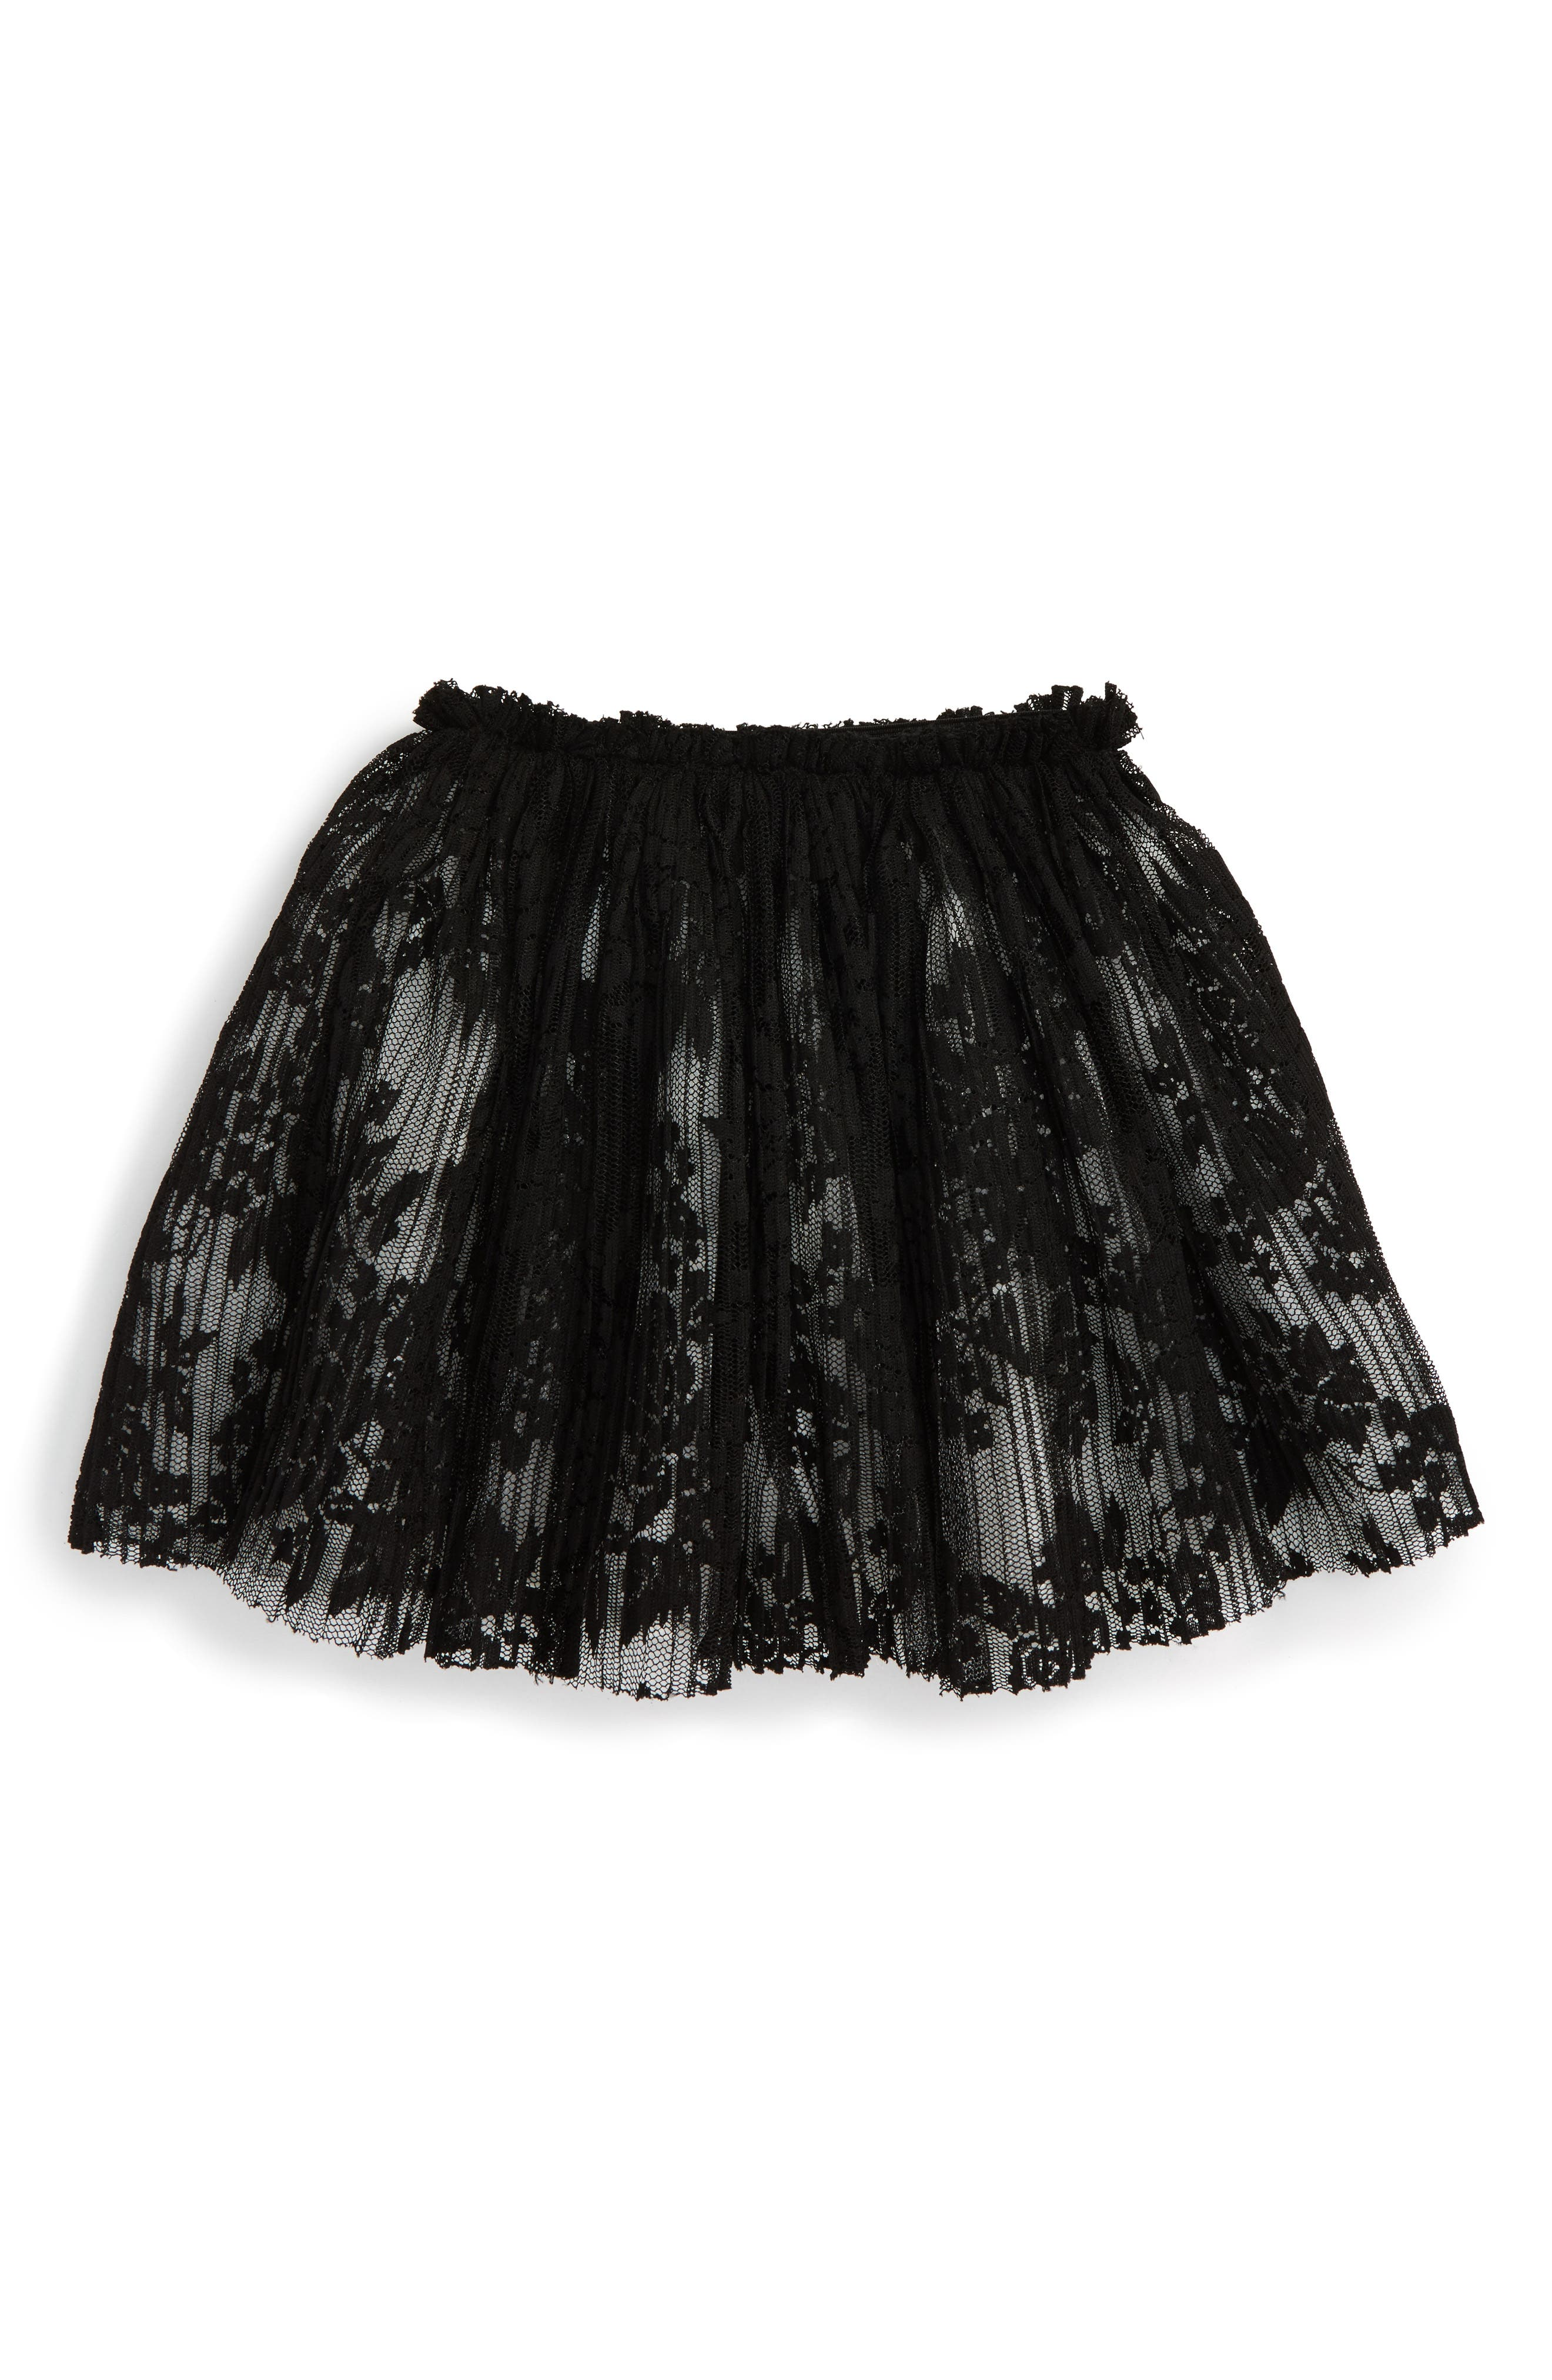 POPATU Lace Tutu Skirt